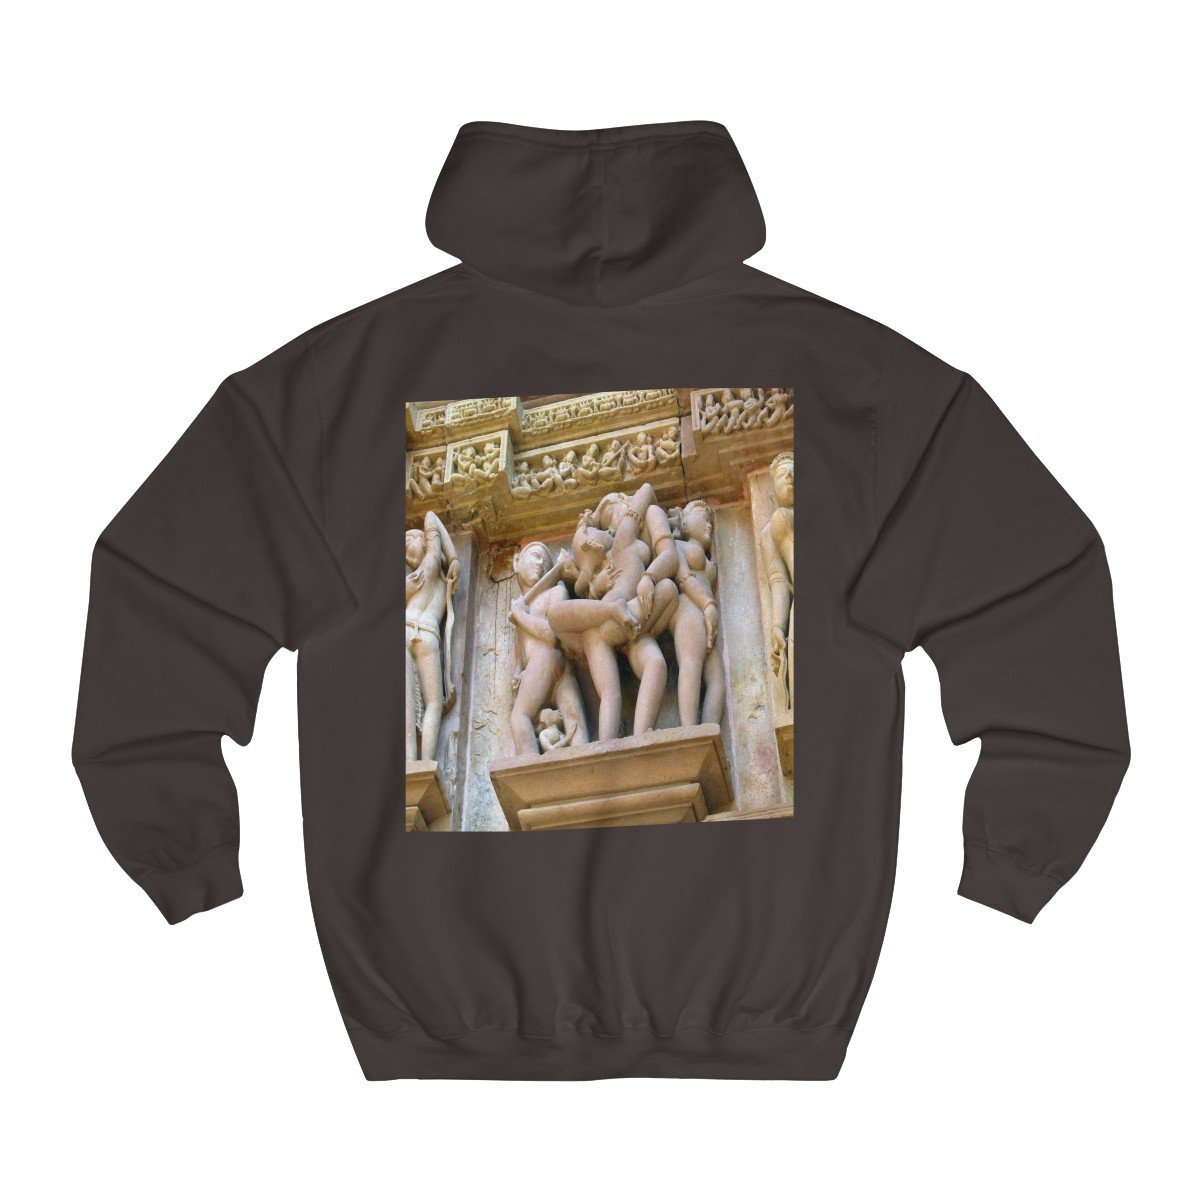 💘 Hot@Hoddie - Unisex College Hoodie - BY OPT OnDemand - Fulfilled in Czech Republic - Yunque Store